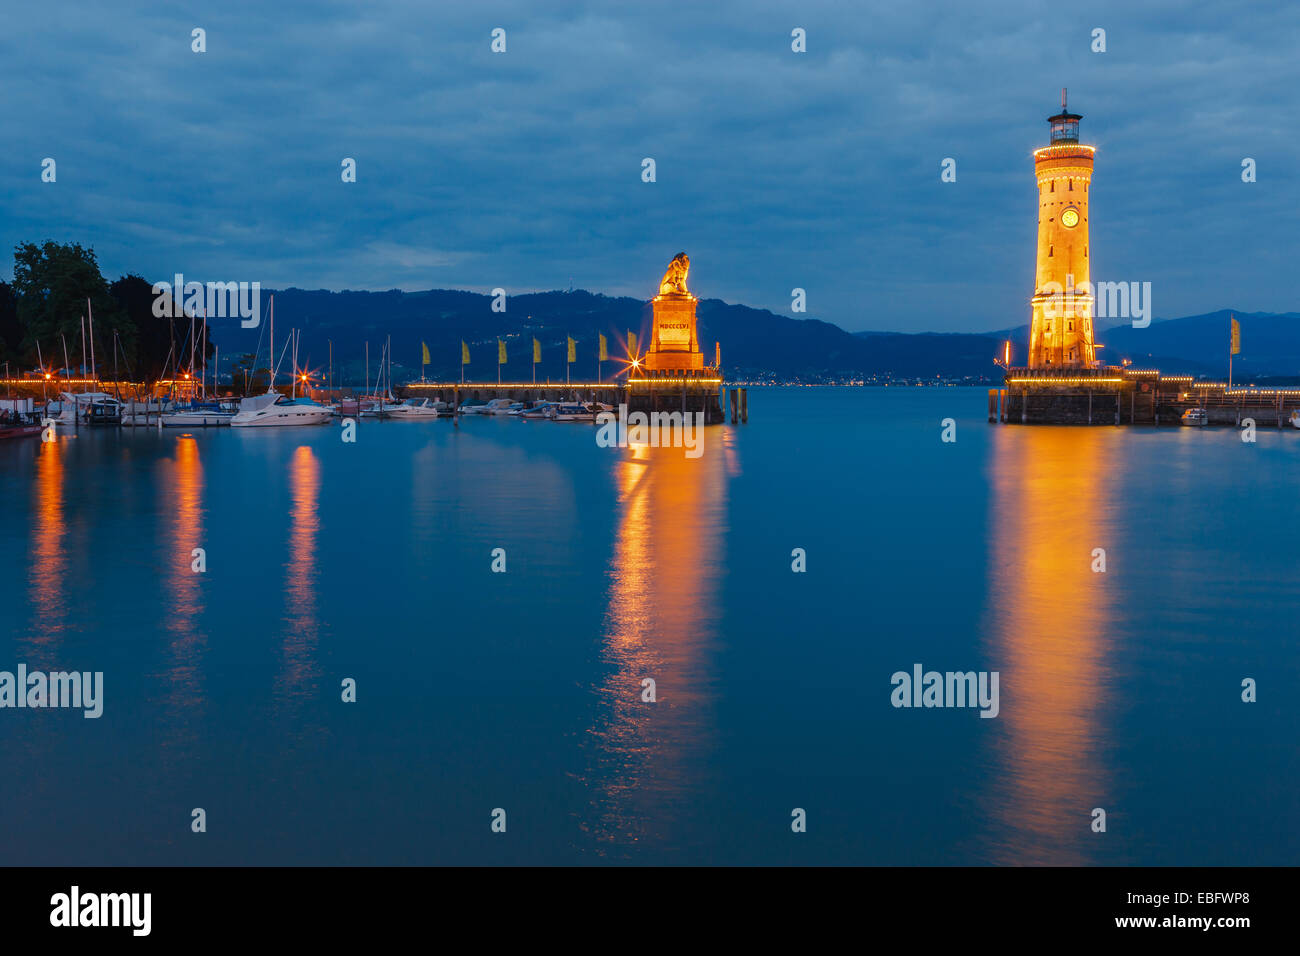 View of harbor entrance and lighthouse at night in Lindau at lake Constance, Bavaria, Germany Stock Photo